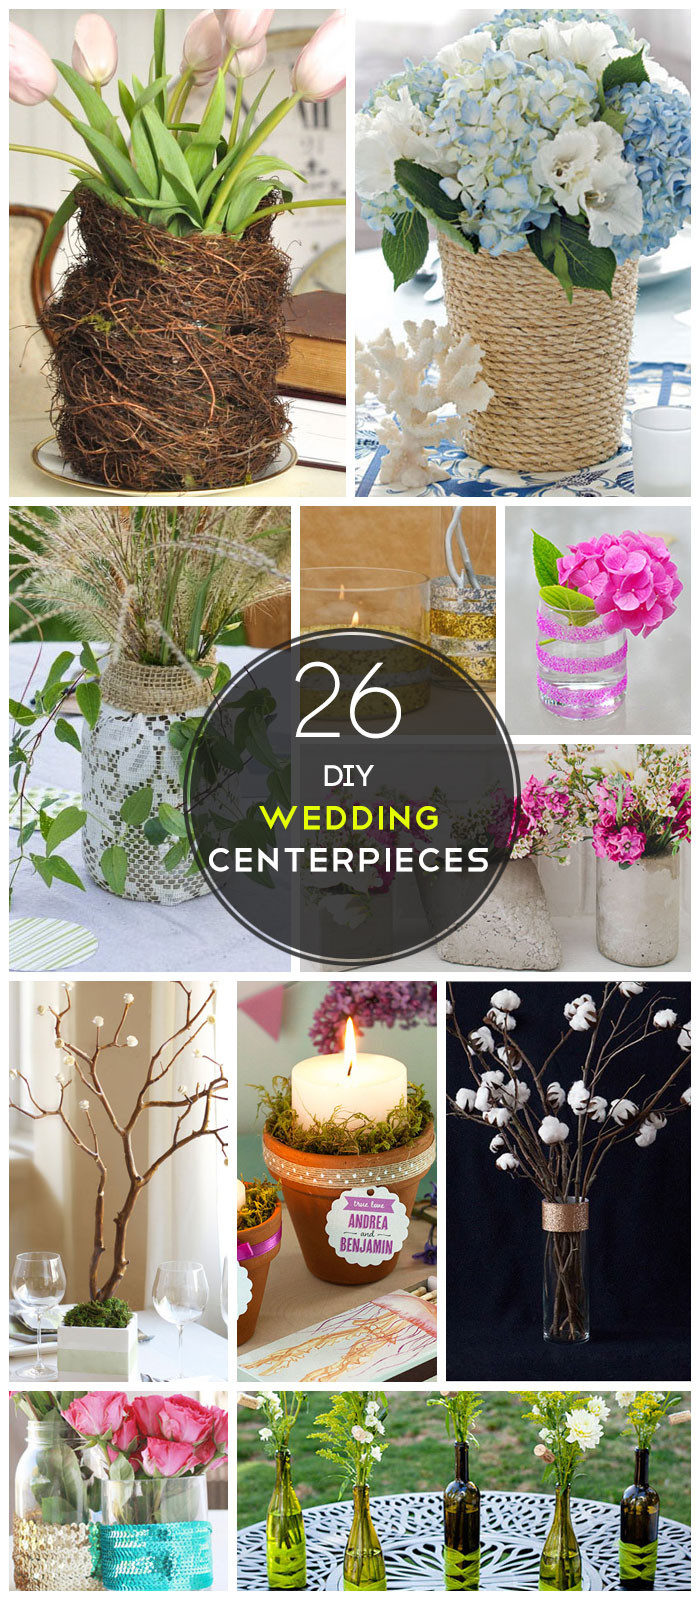 Best ideas about DIY Weddings On A Budget . Save or Pin wedding centerpieces on a bud Bing images Now.